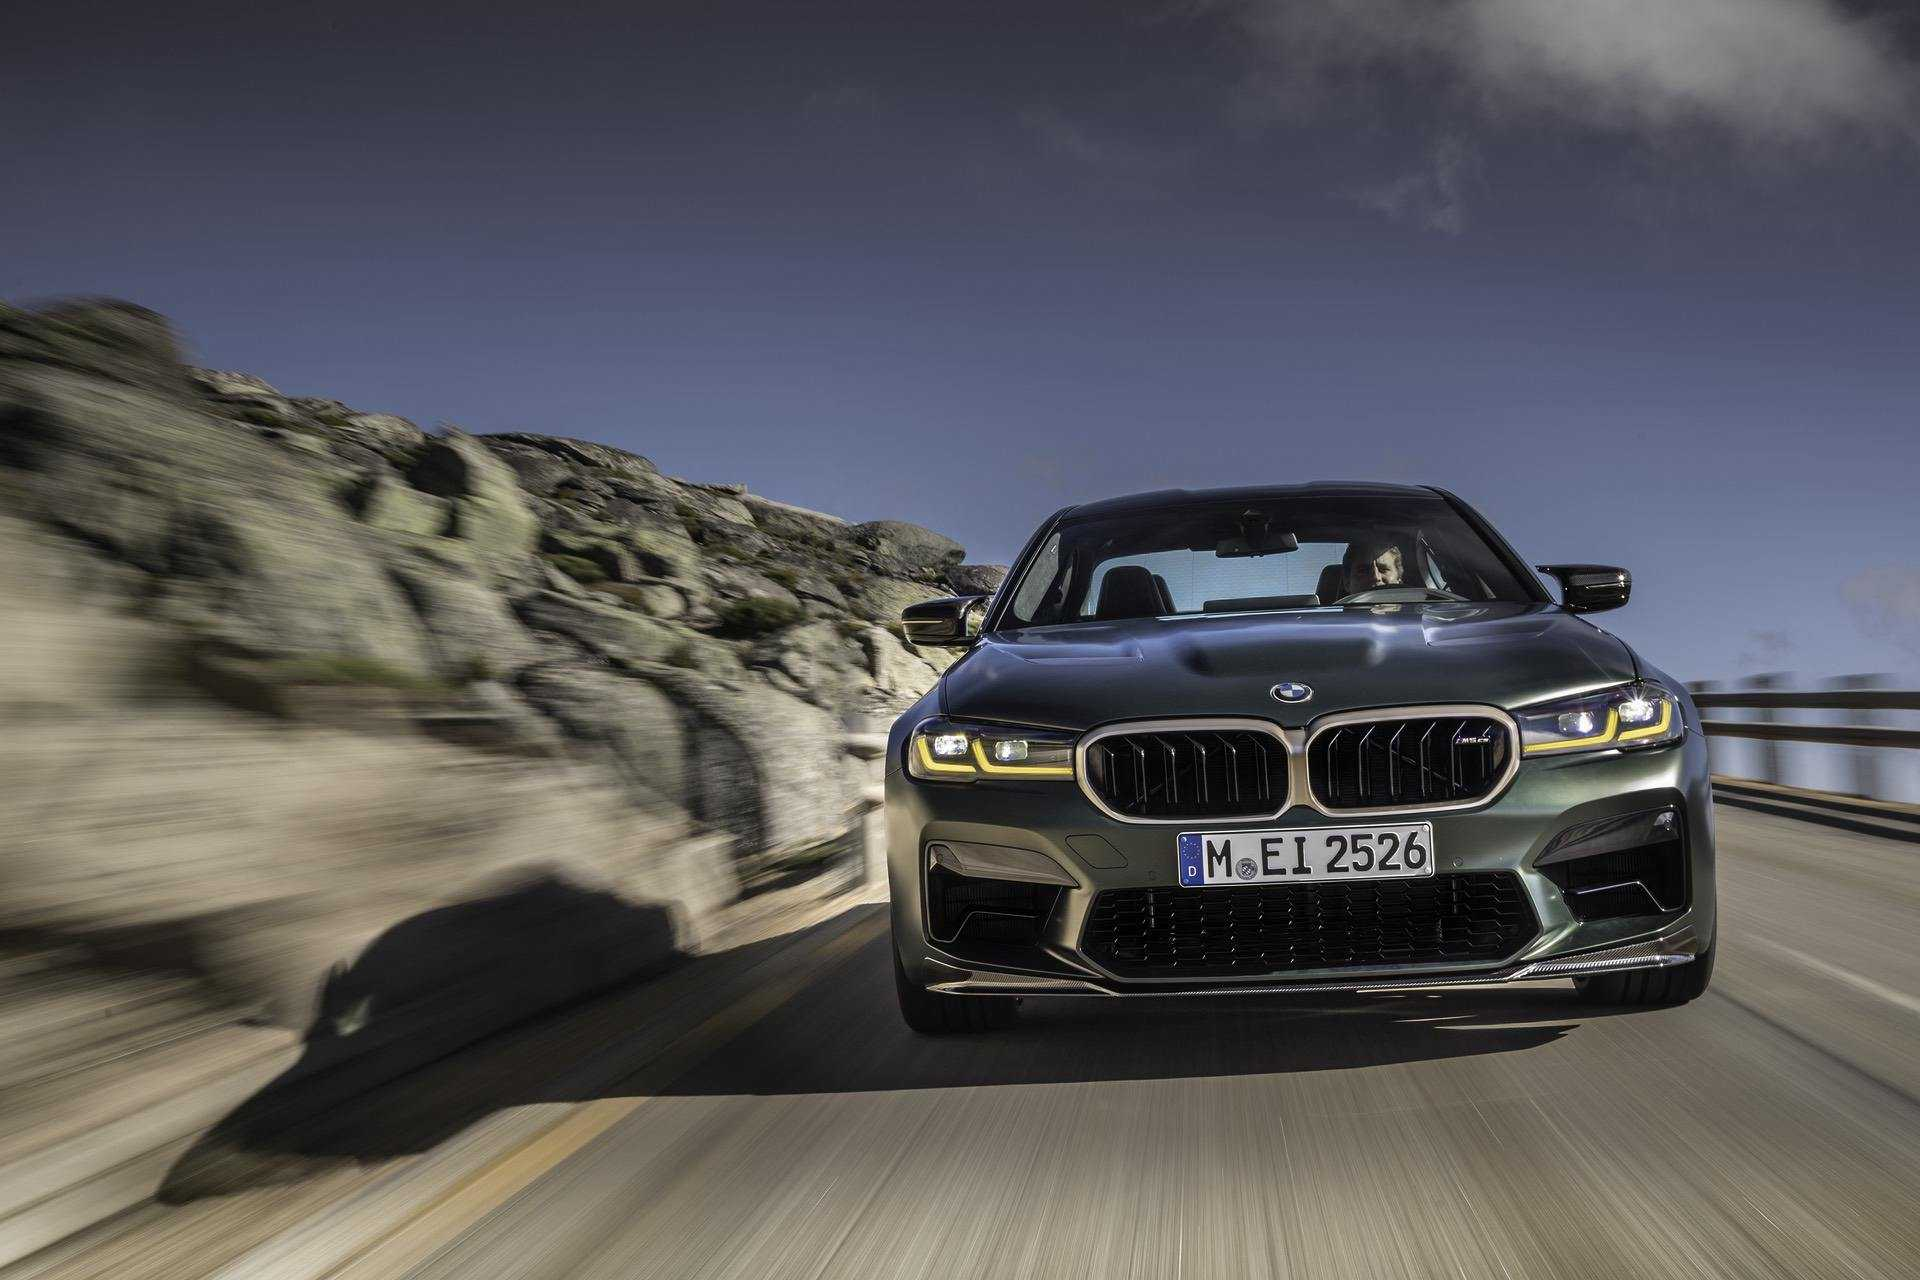 BMW M5 CS 2021 Officially Revealed, Pictures and Specs Out Now!